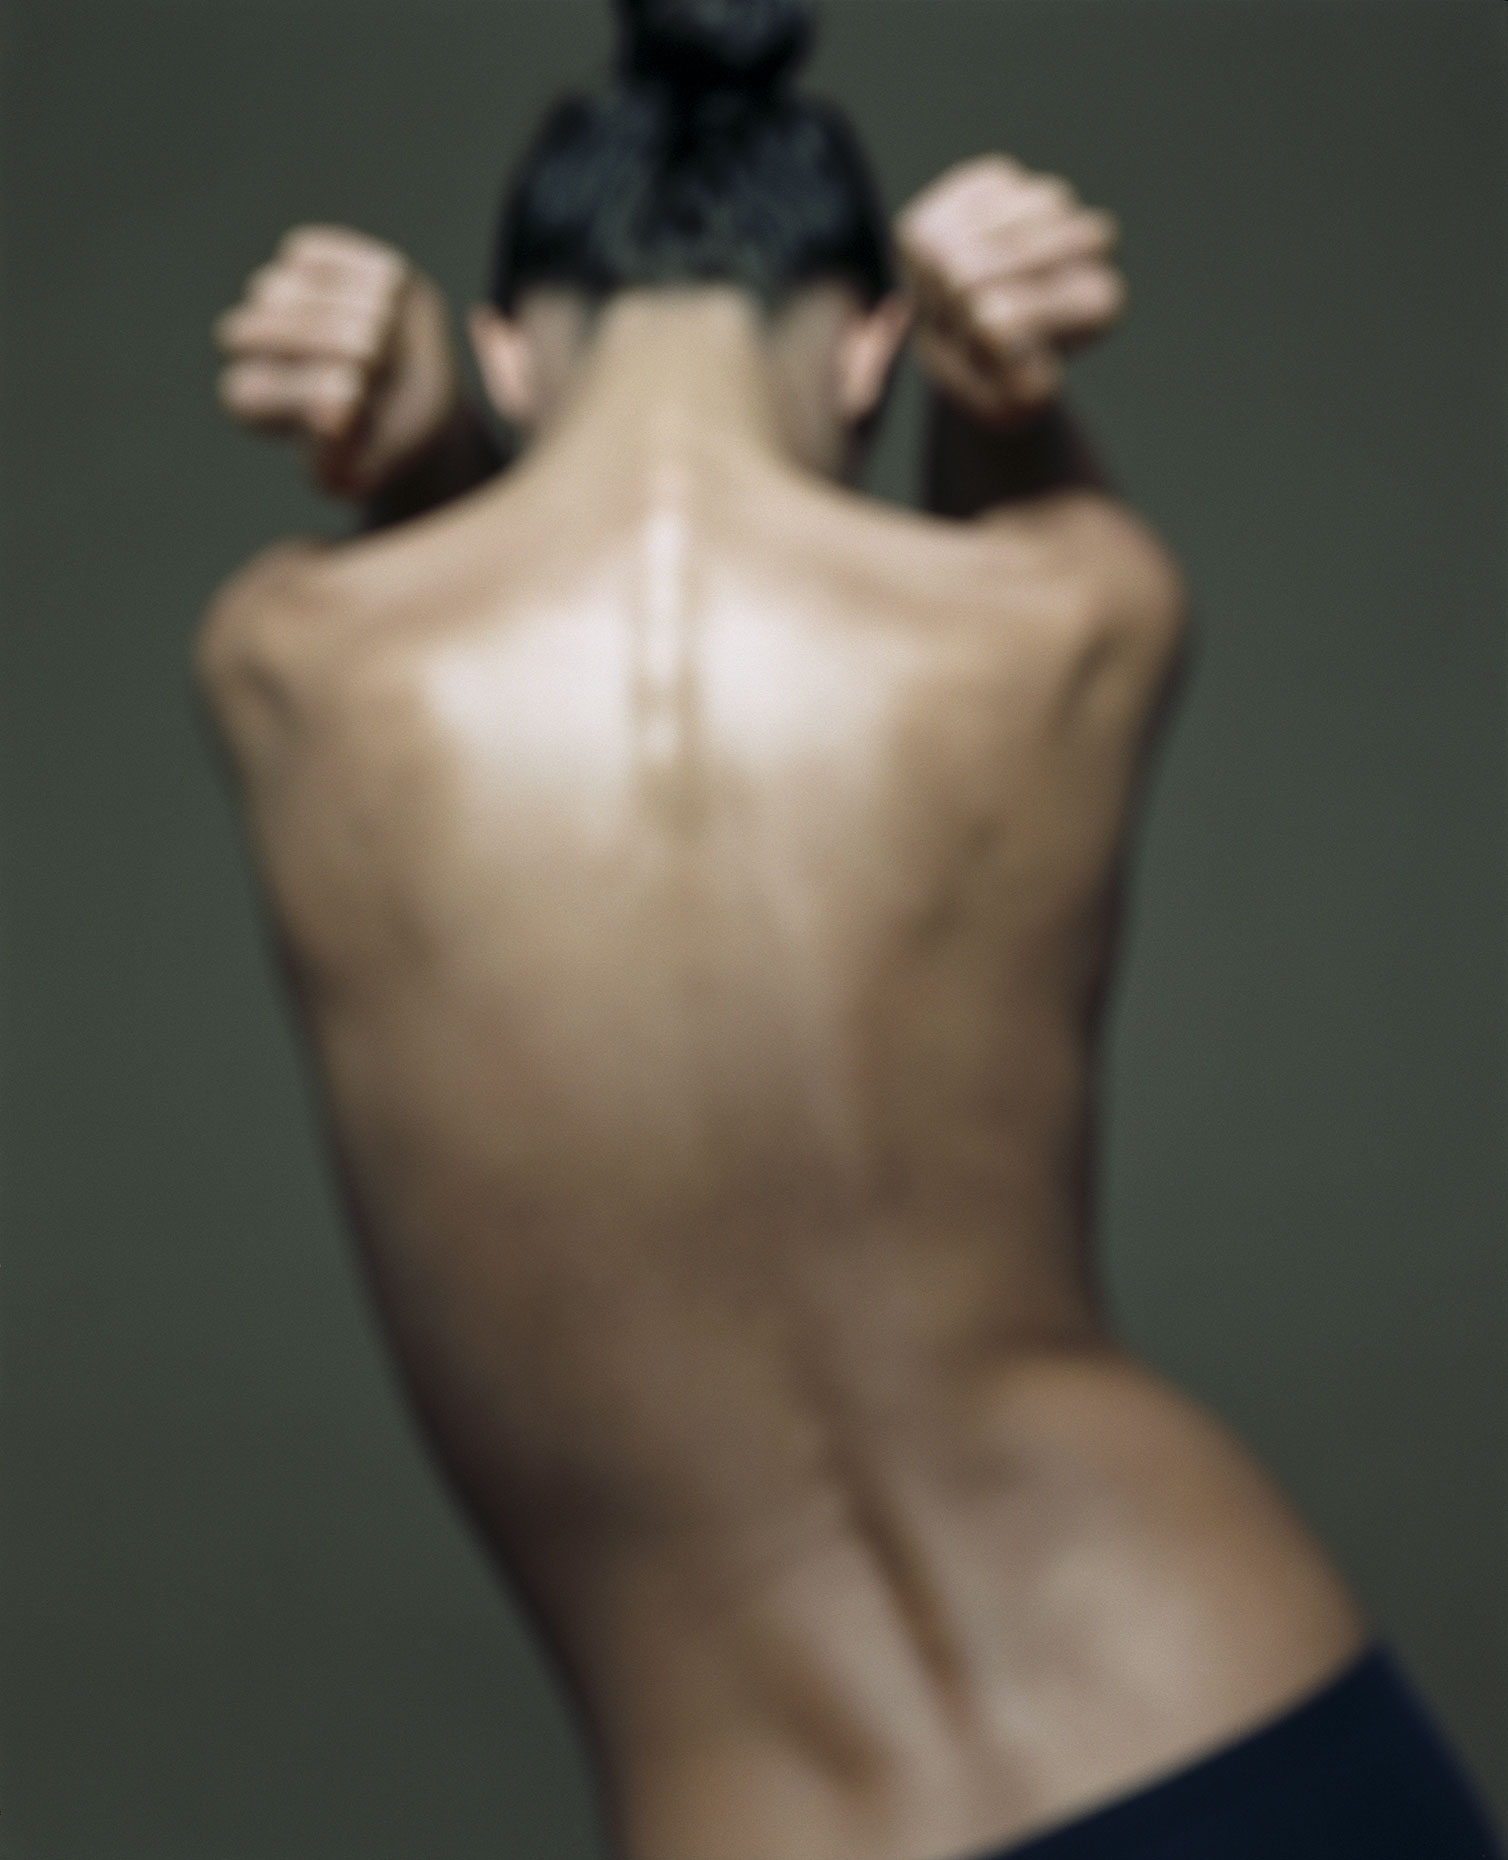 Naked young woman, rear view (defocused).